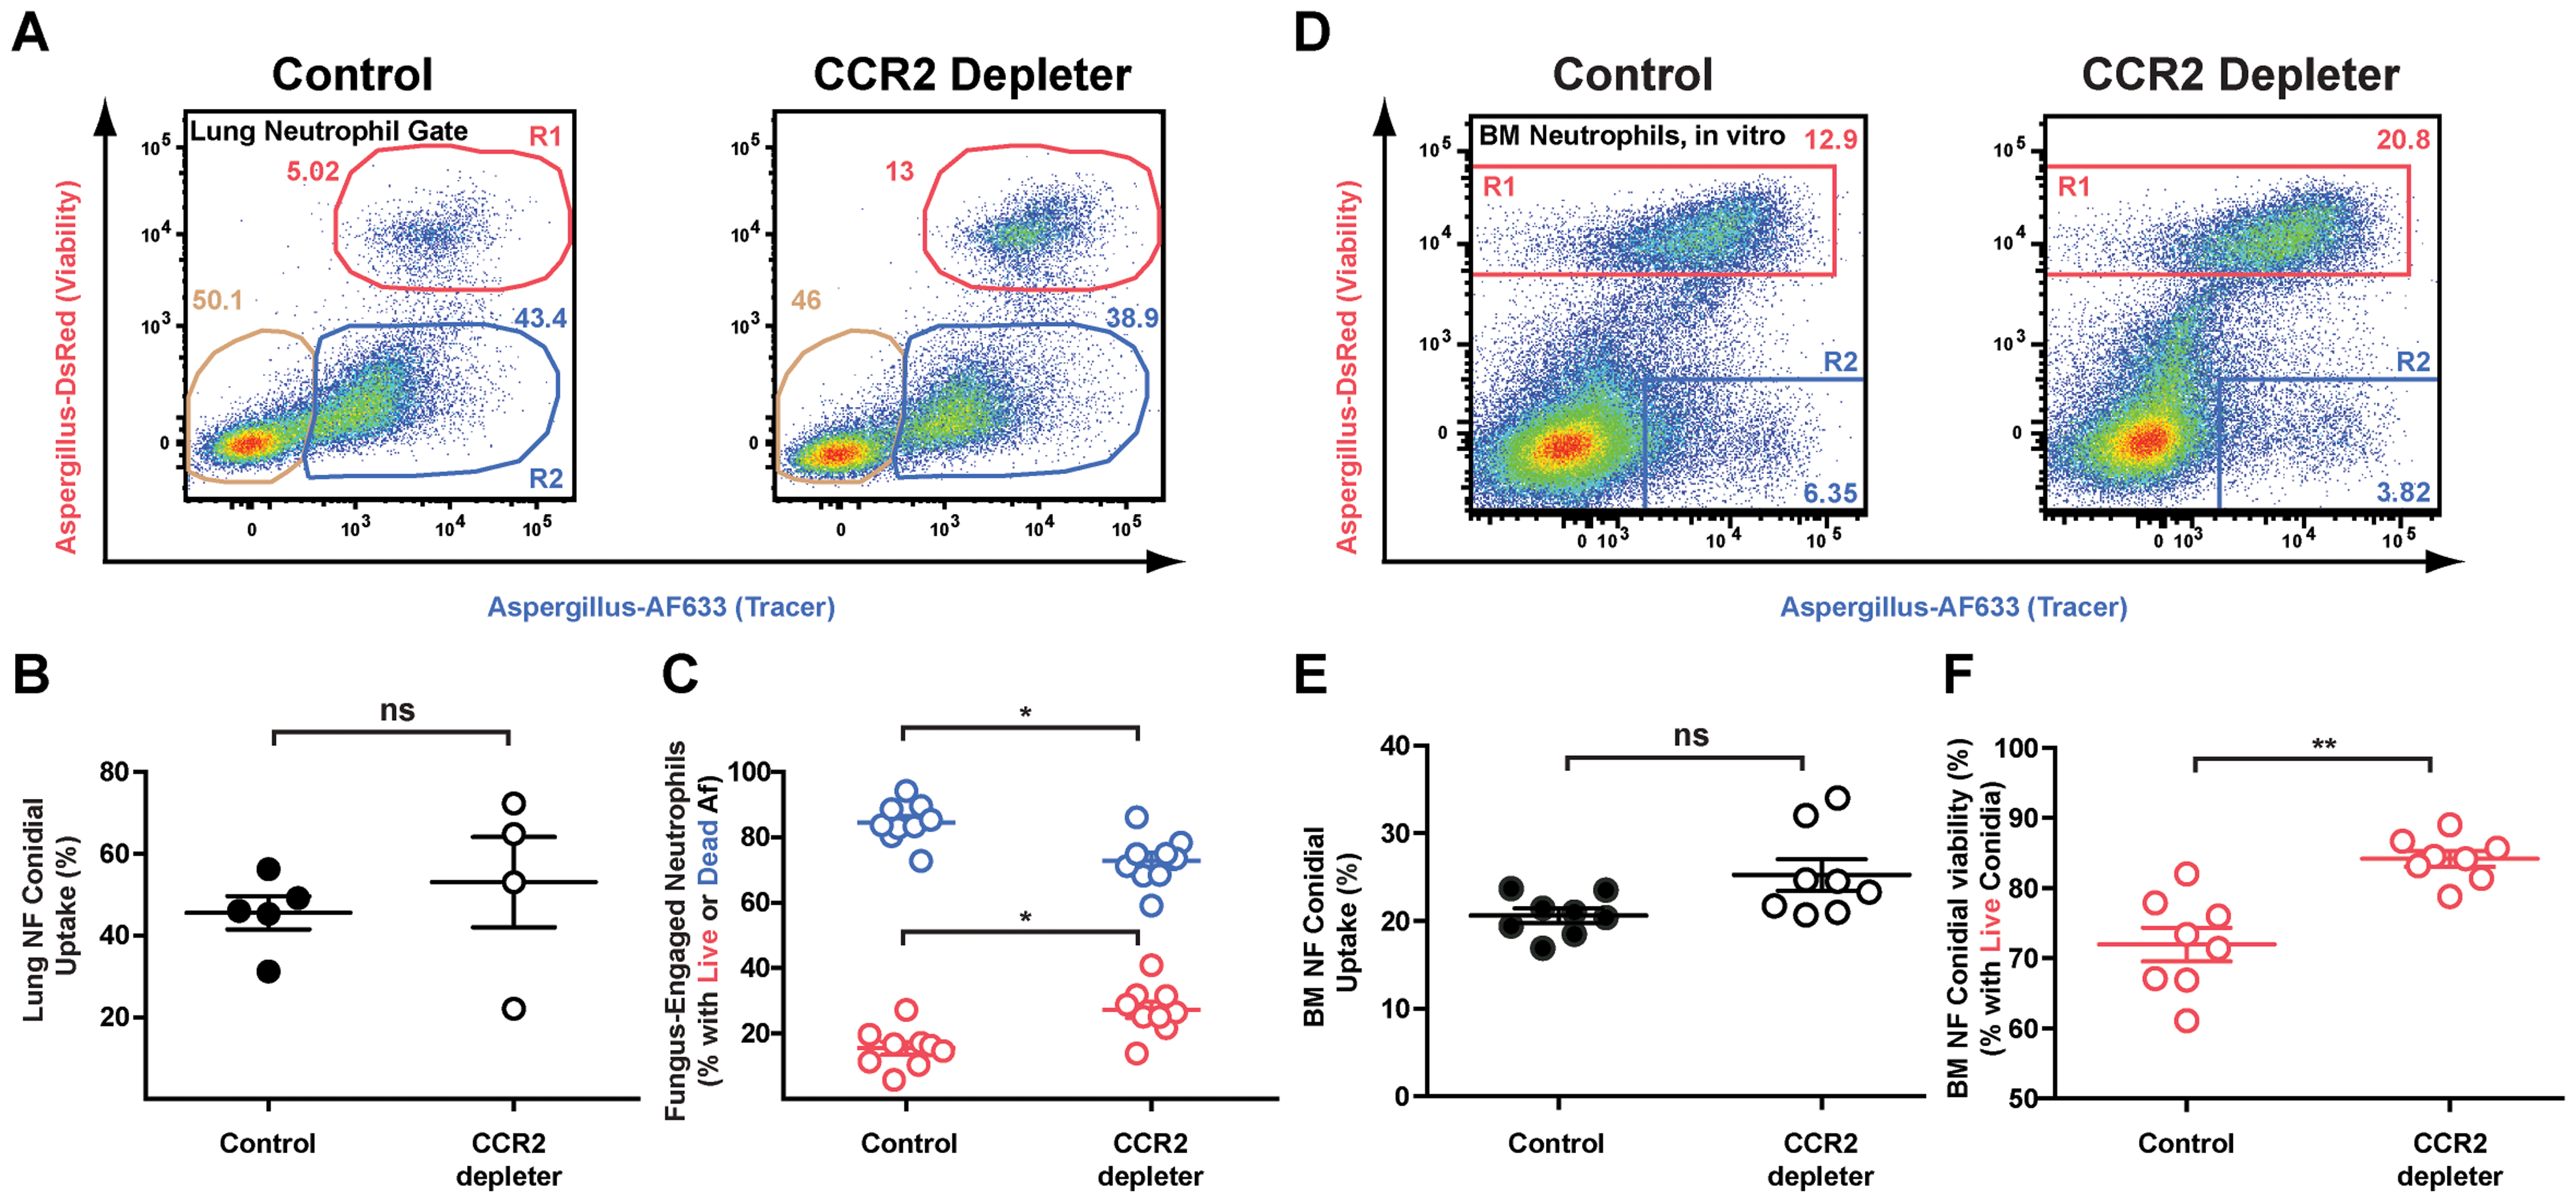 Diminished neutrophil conidiacidal activity in CCR2 depleter mice.